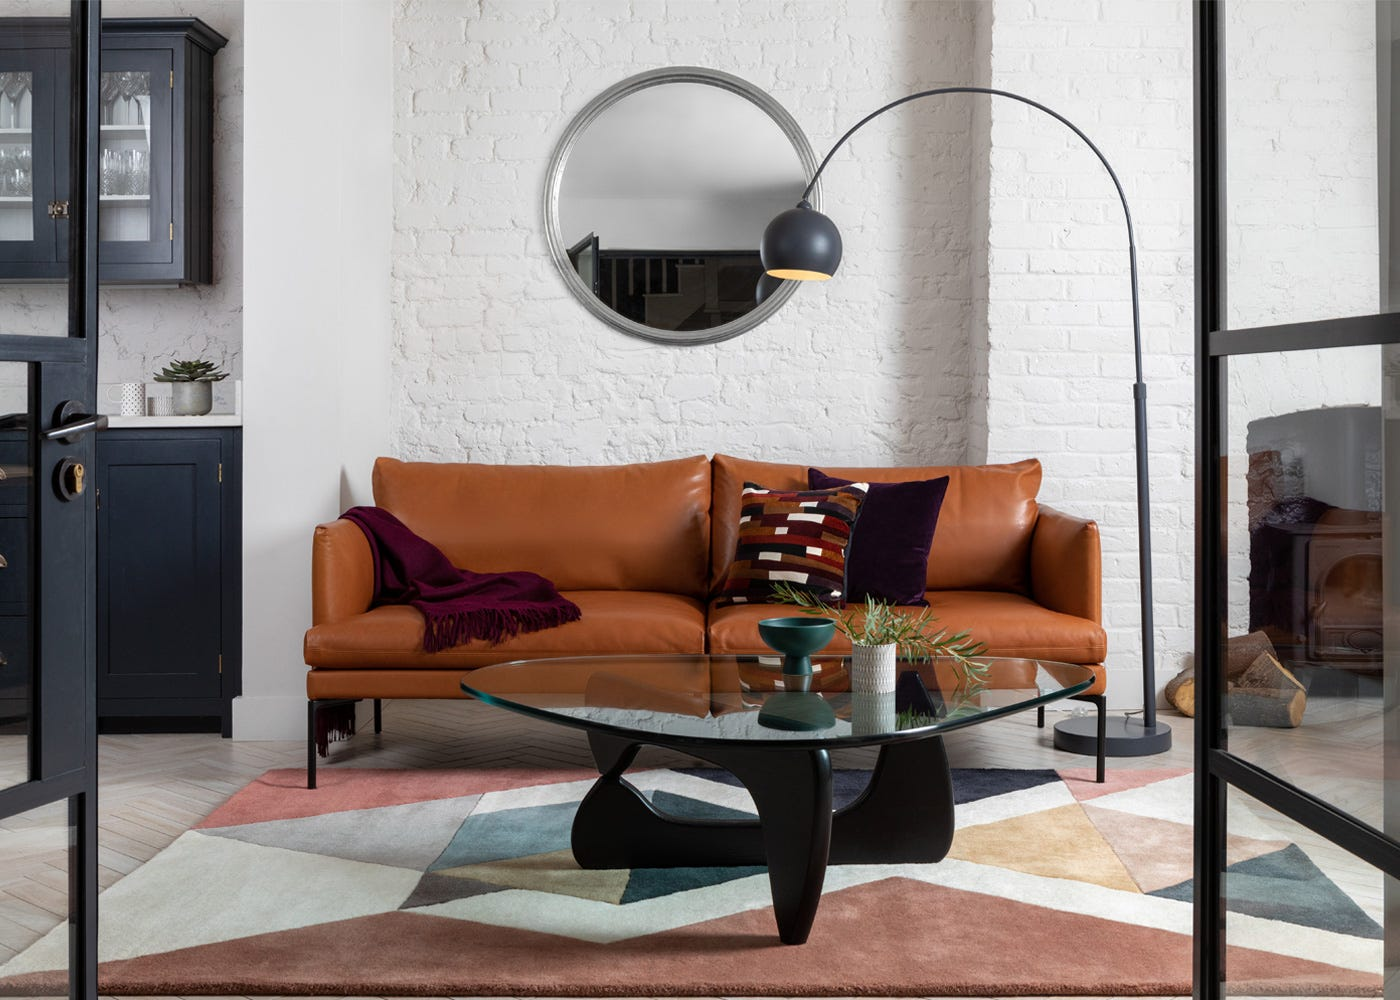 Classic Large Round Mirror in Silver with Matera 3 Seater Sofa and Amazing Rug